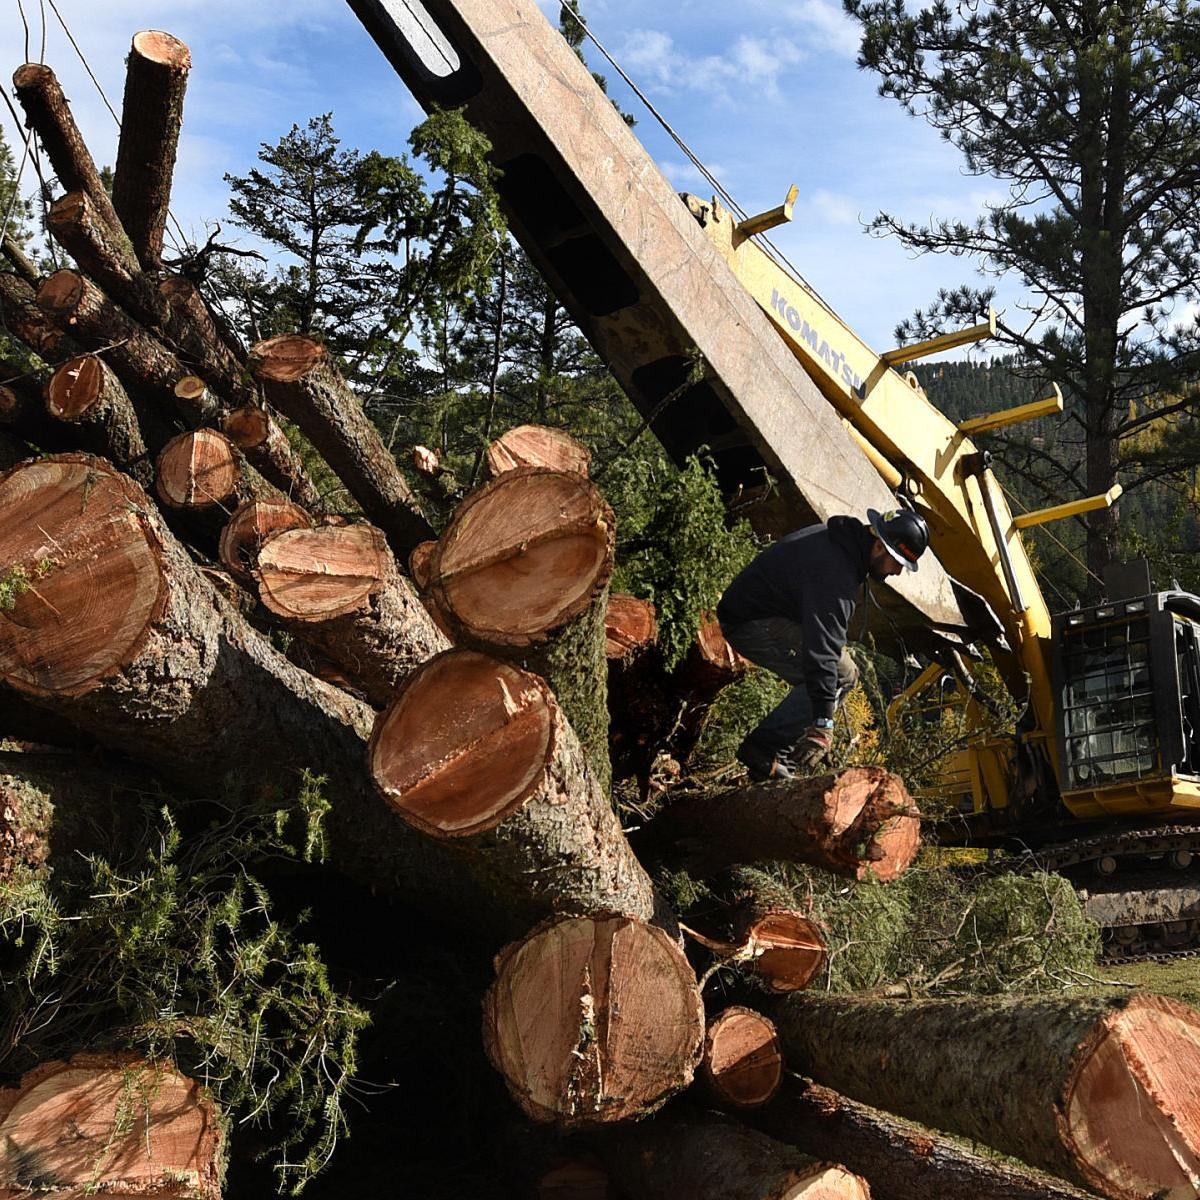 Timber industry leaves lasting traditions and scars across Montana